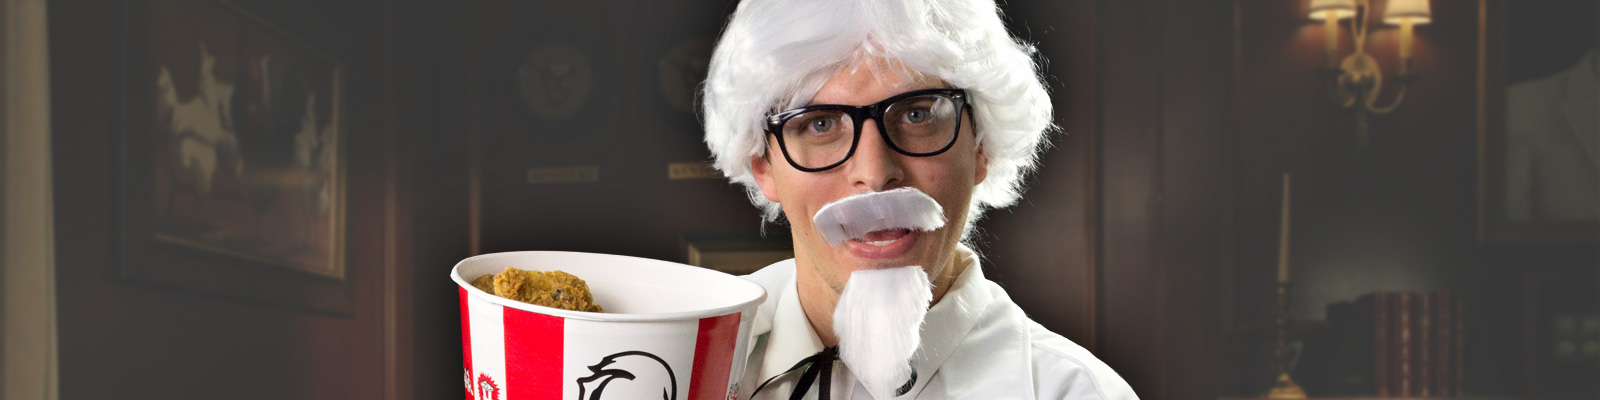 DIY Colonel Sanders Costume